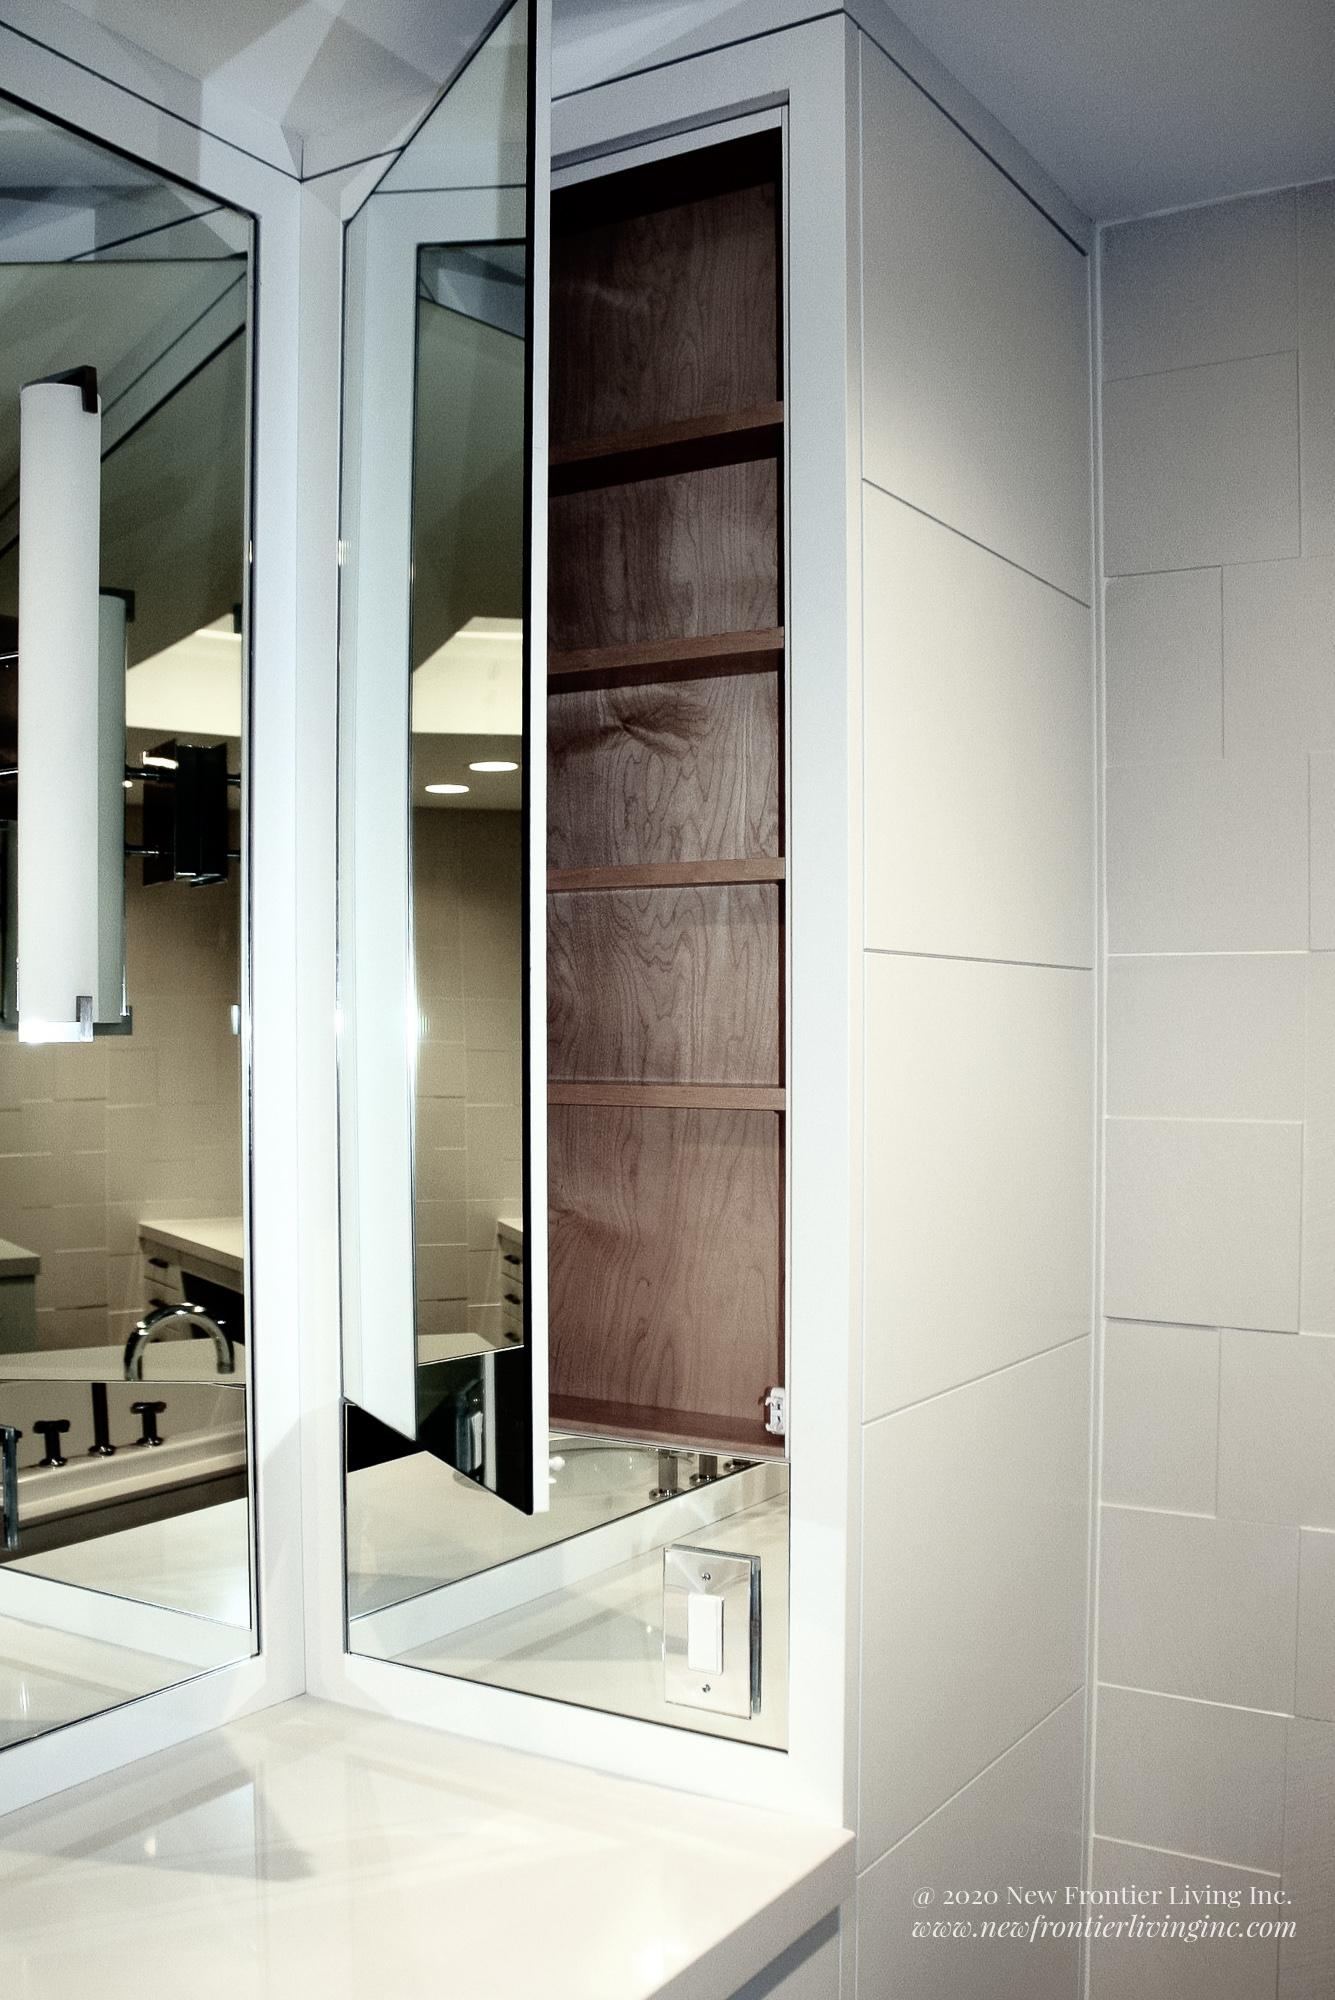 White bathroom installed by NFL Inc. with mirror left side